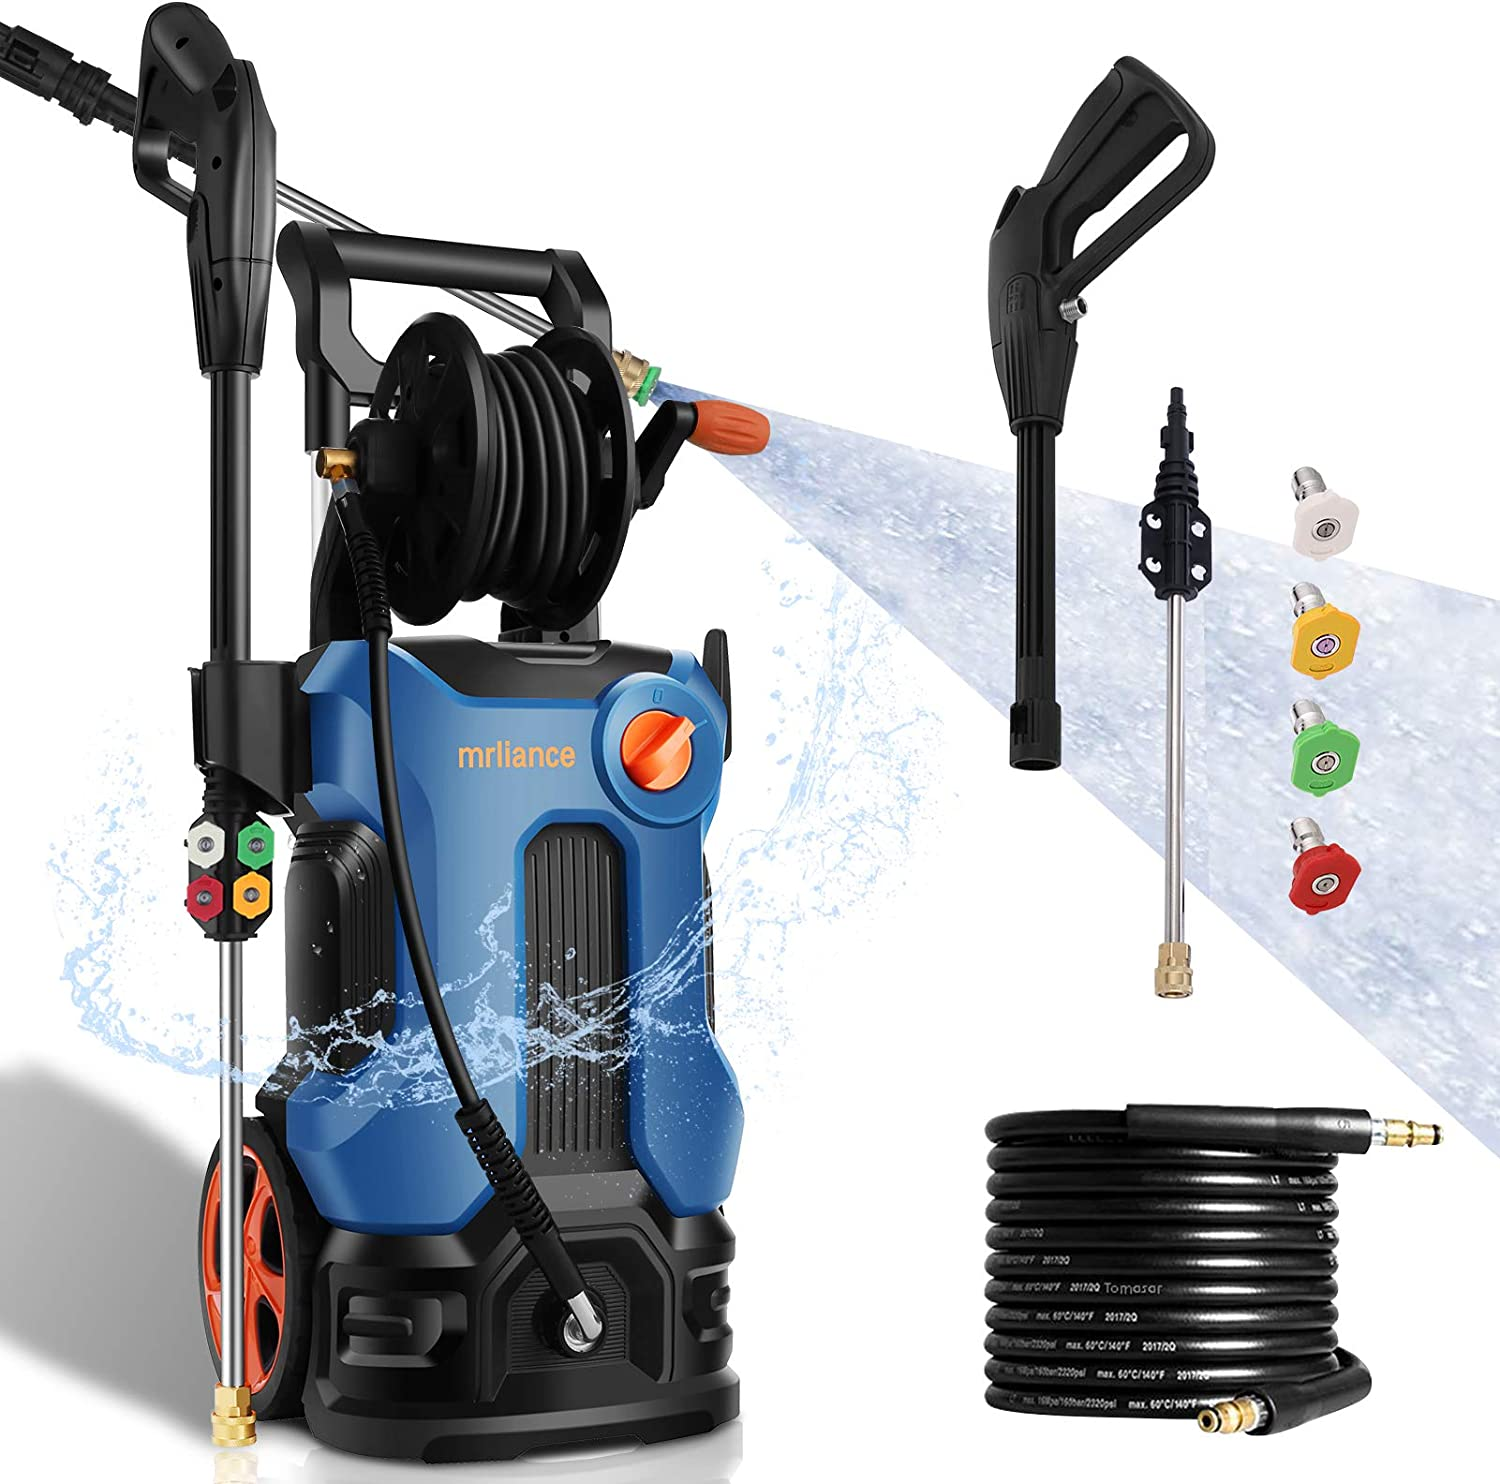 Mrliance Electric Power Washer 3800PSI